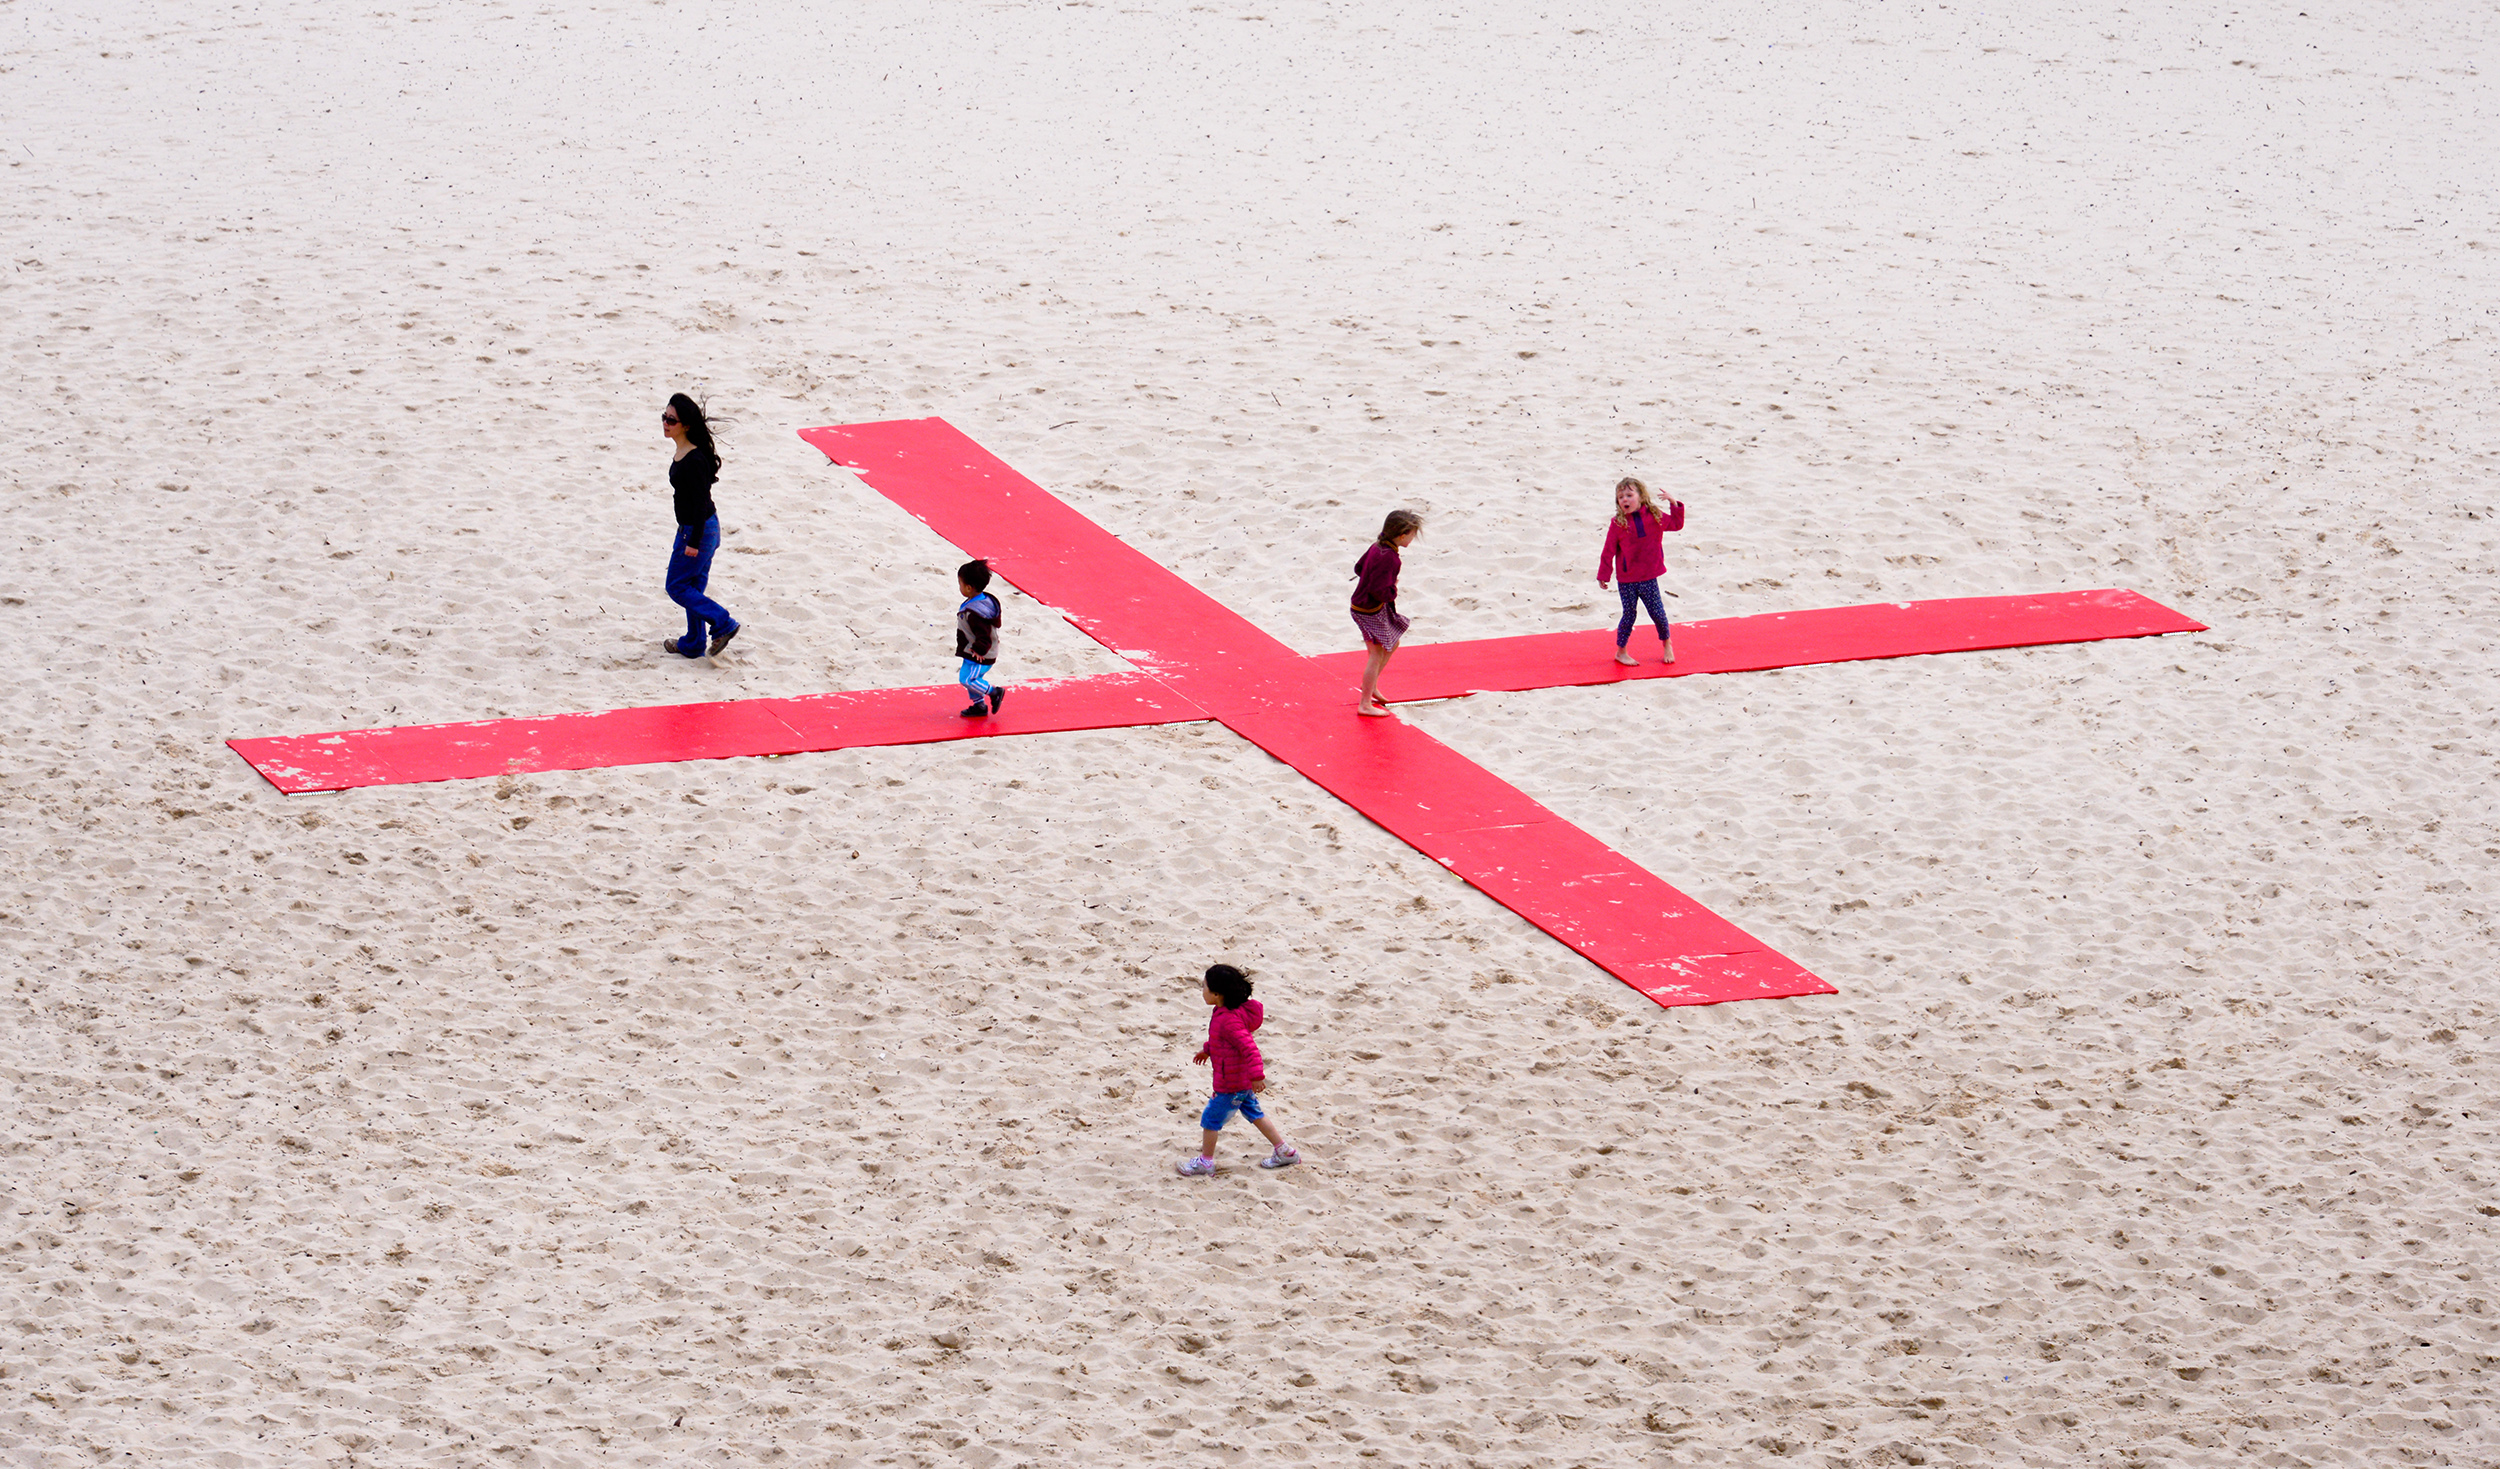 Sarah Fitzgerald, x, Sculpture by the Sea, Bondi 2015. Photo Clyde Yee